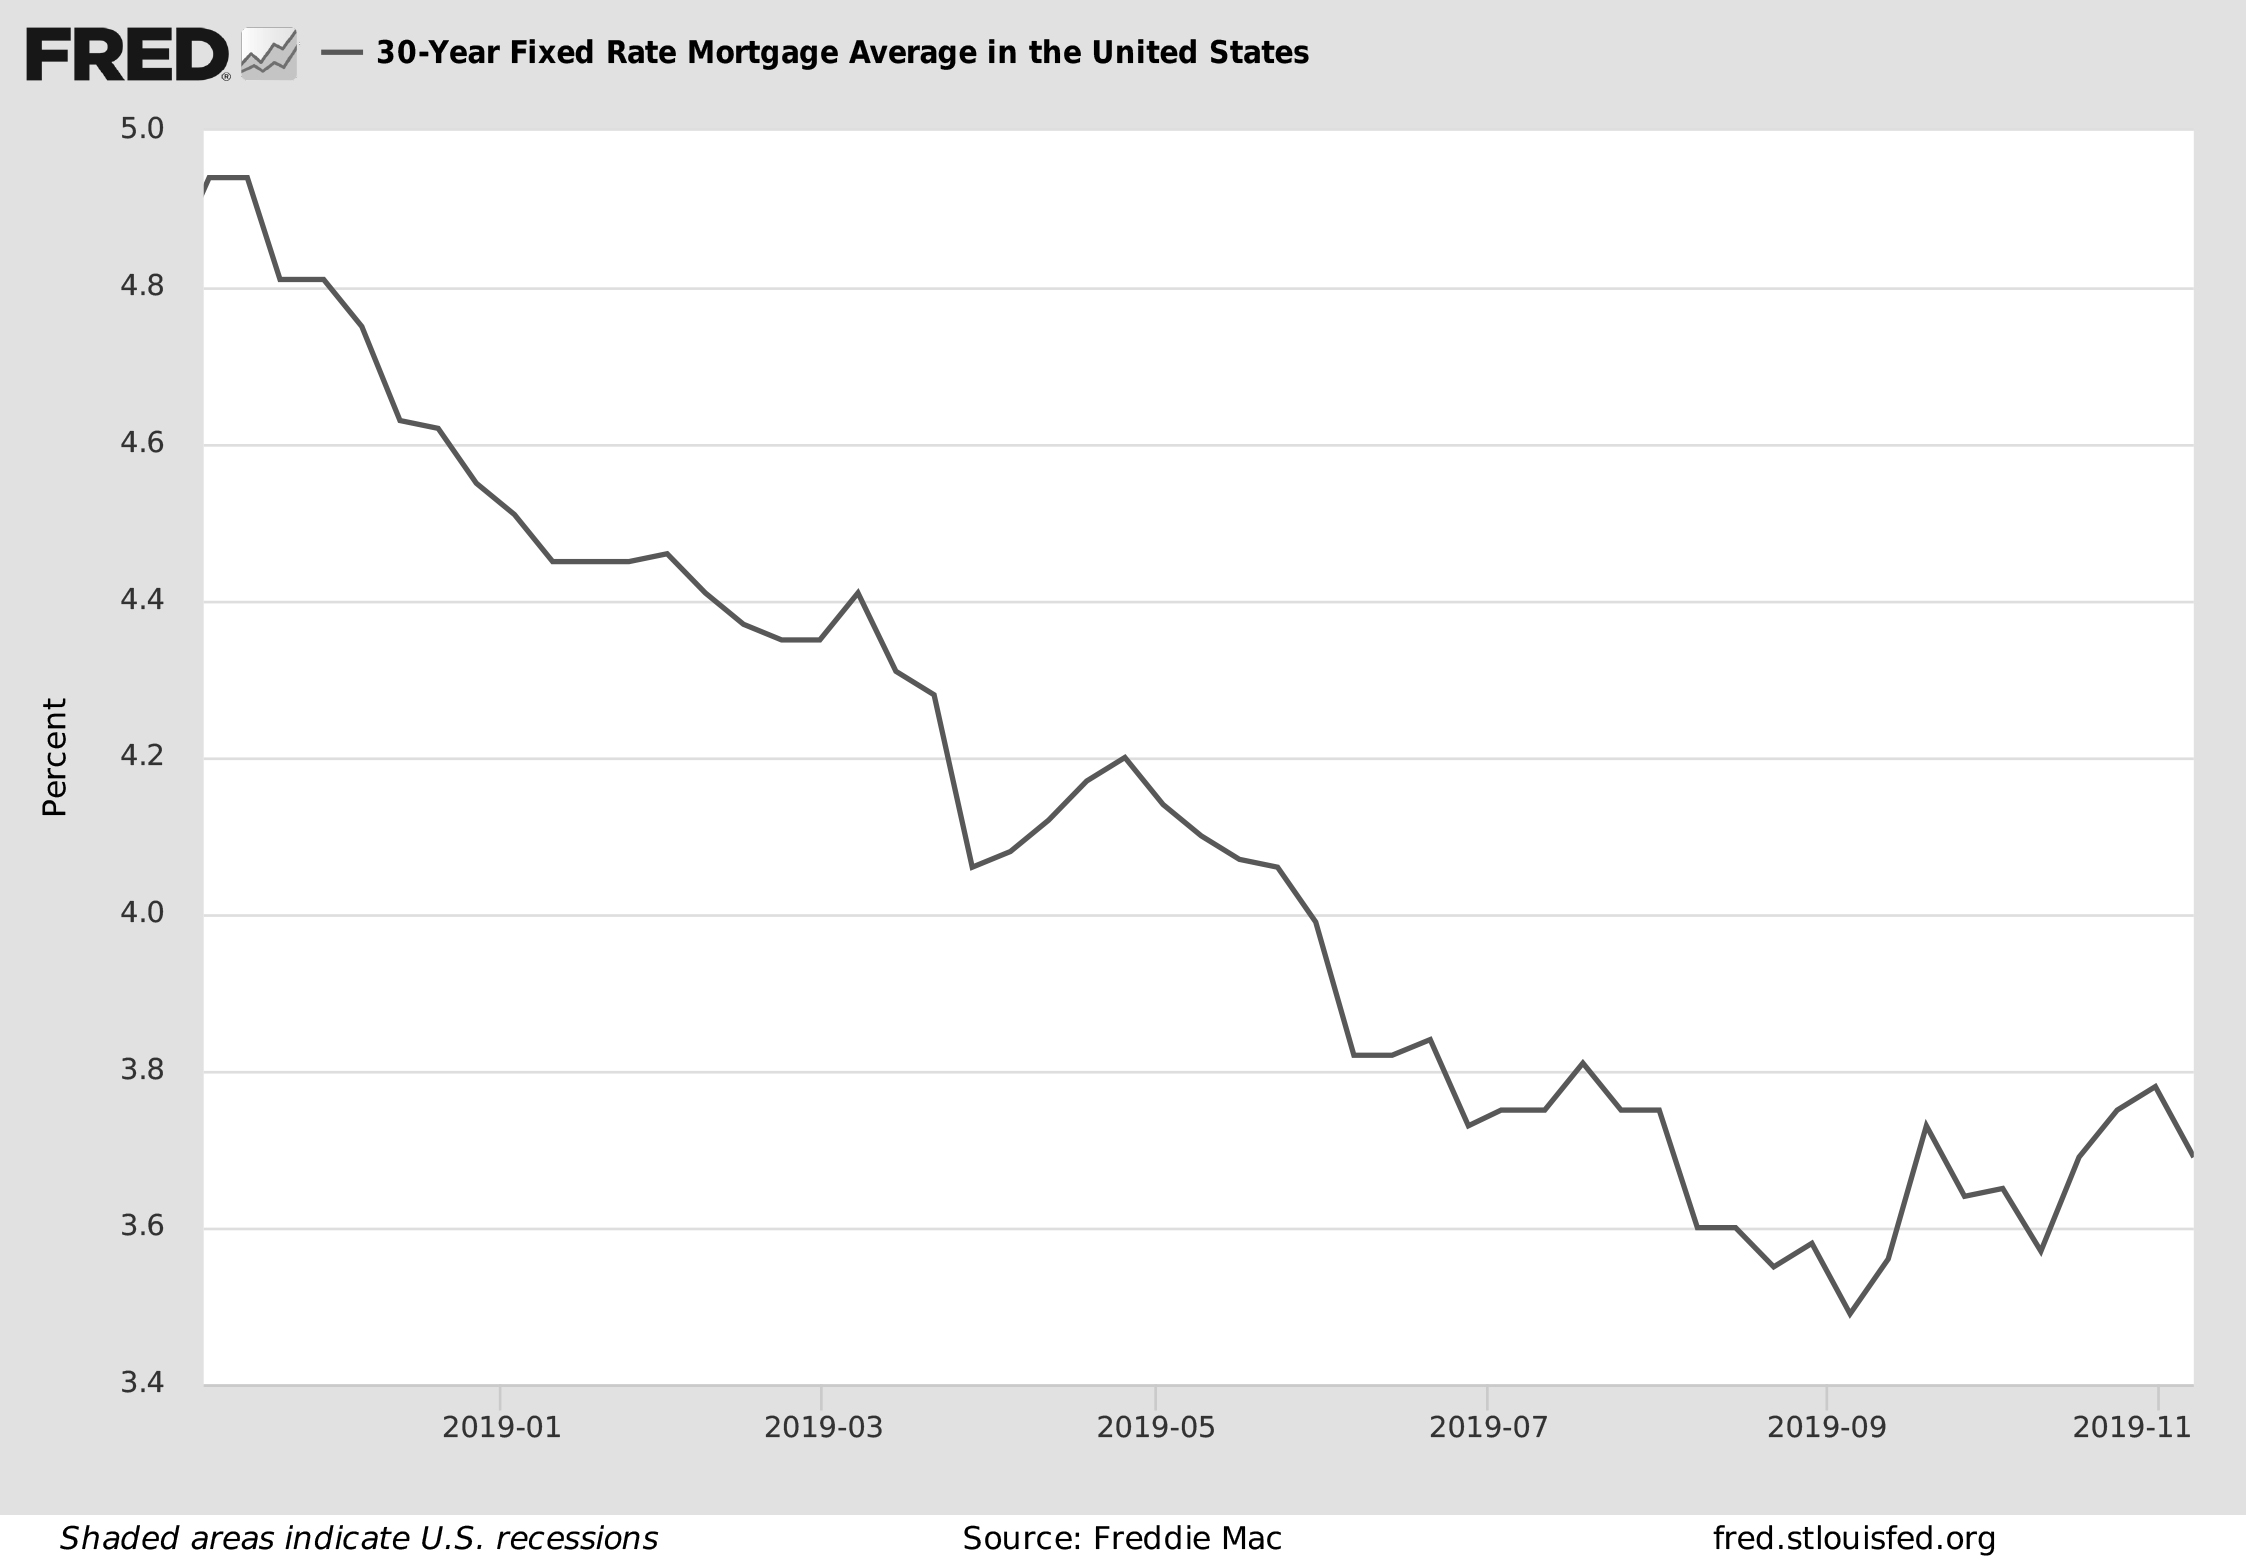 Interest rates in the last year november 2019